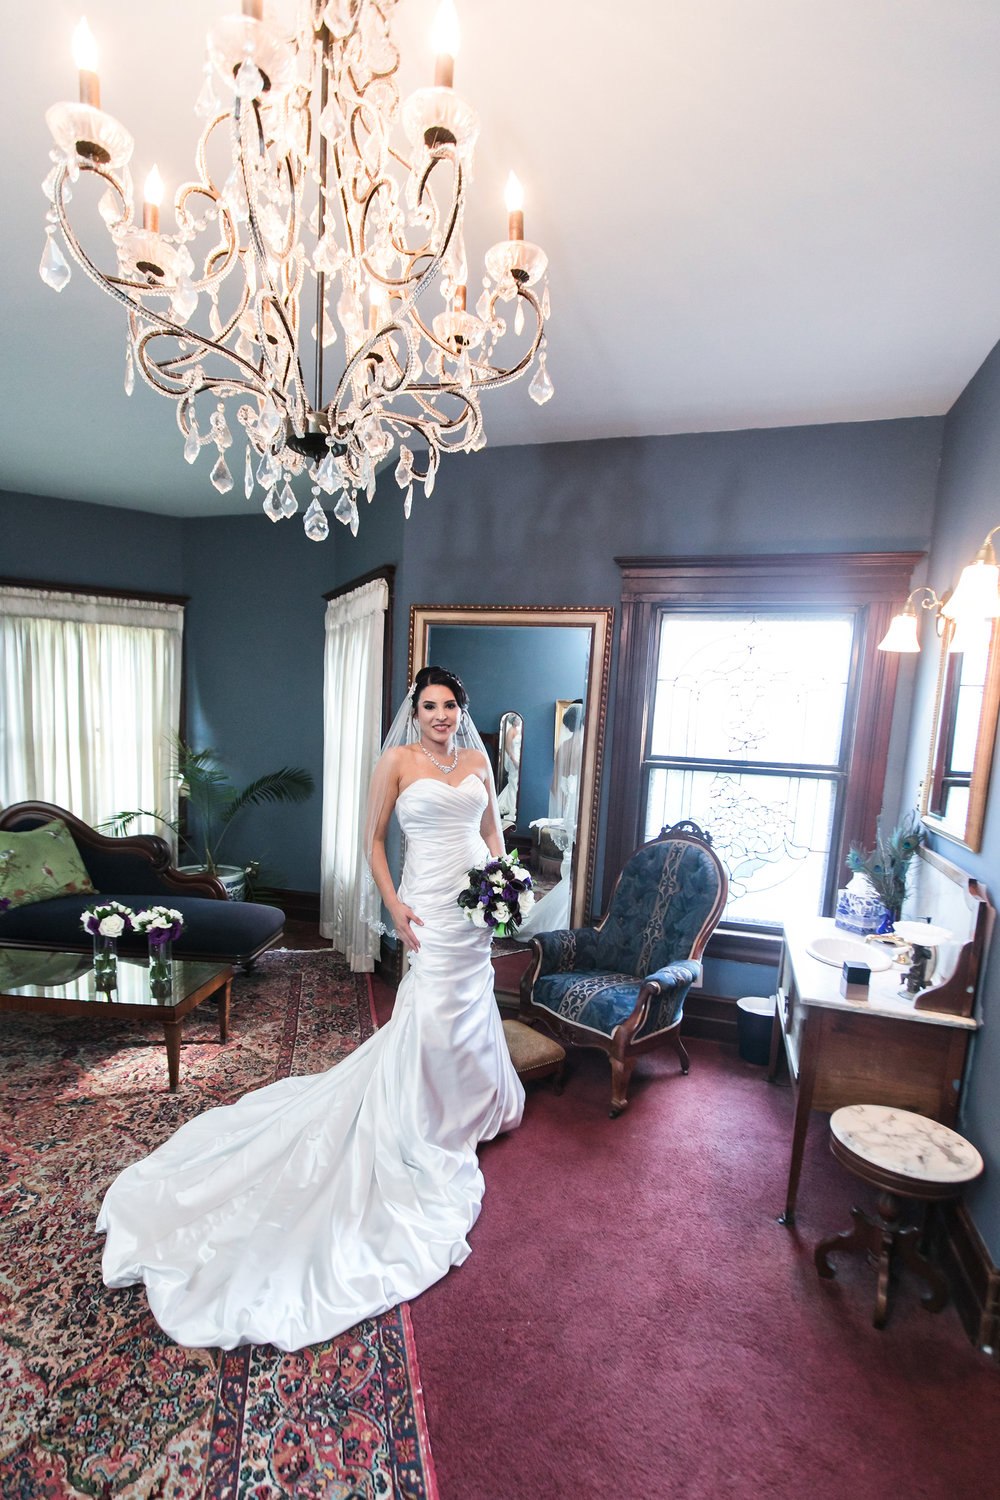 christmas house inn and gardens wedding carrie vines photography elegant bridal portrait under giant chandelier